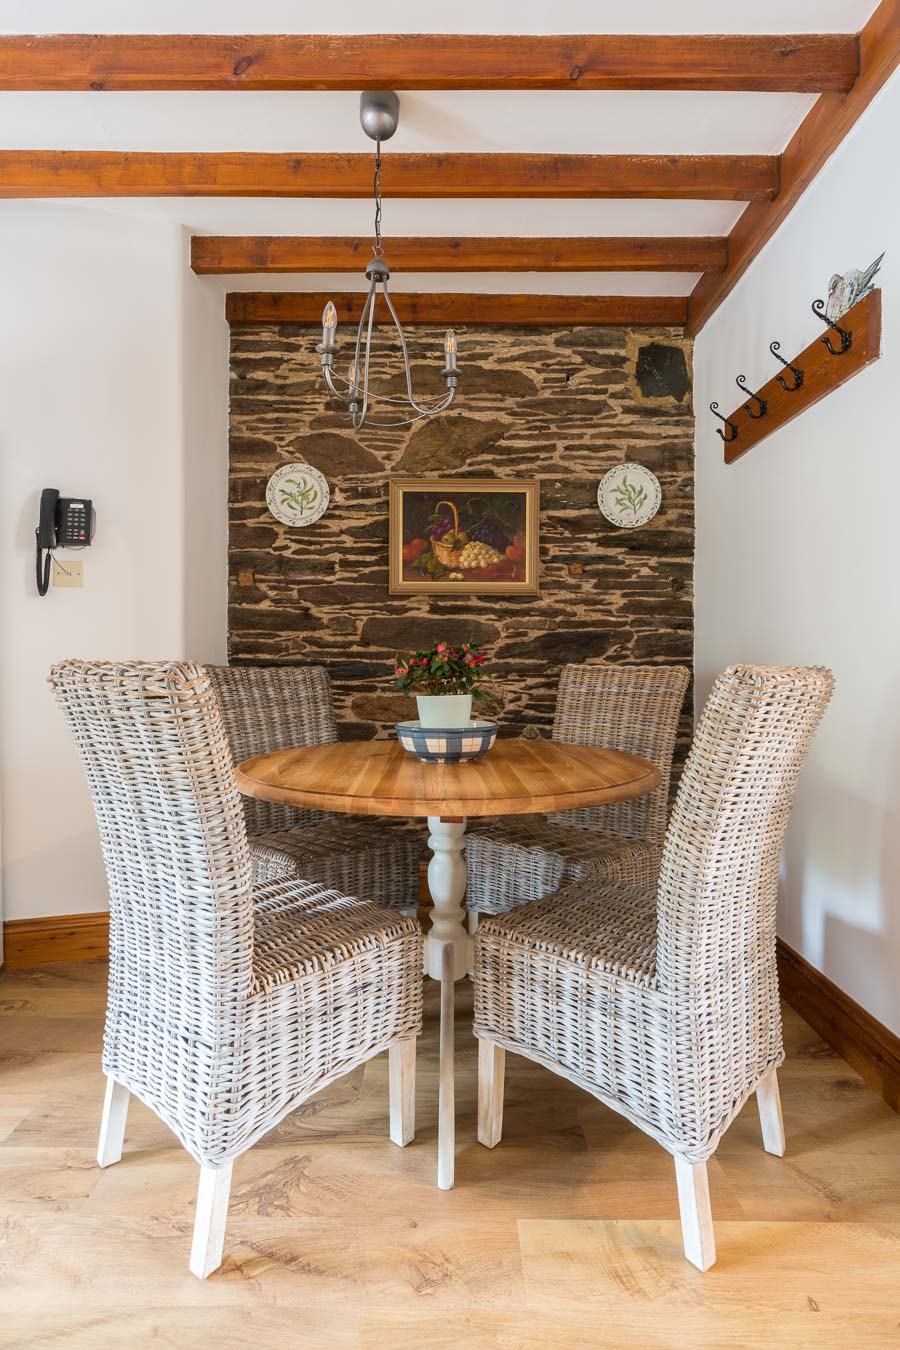 The dining table for four in Cartwheel cottage with wicker chairs and exposed brick work behind.